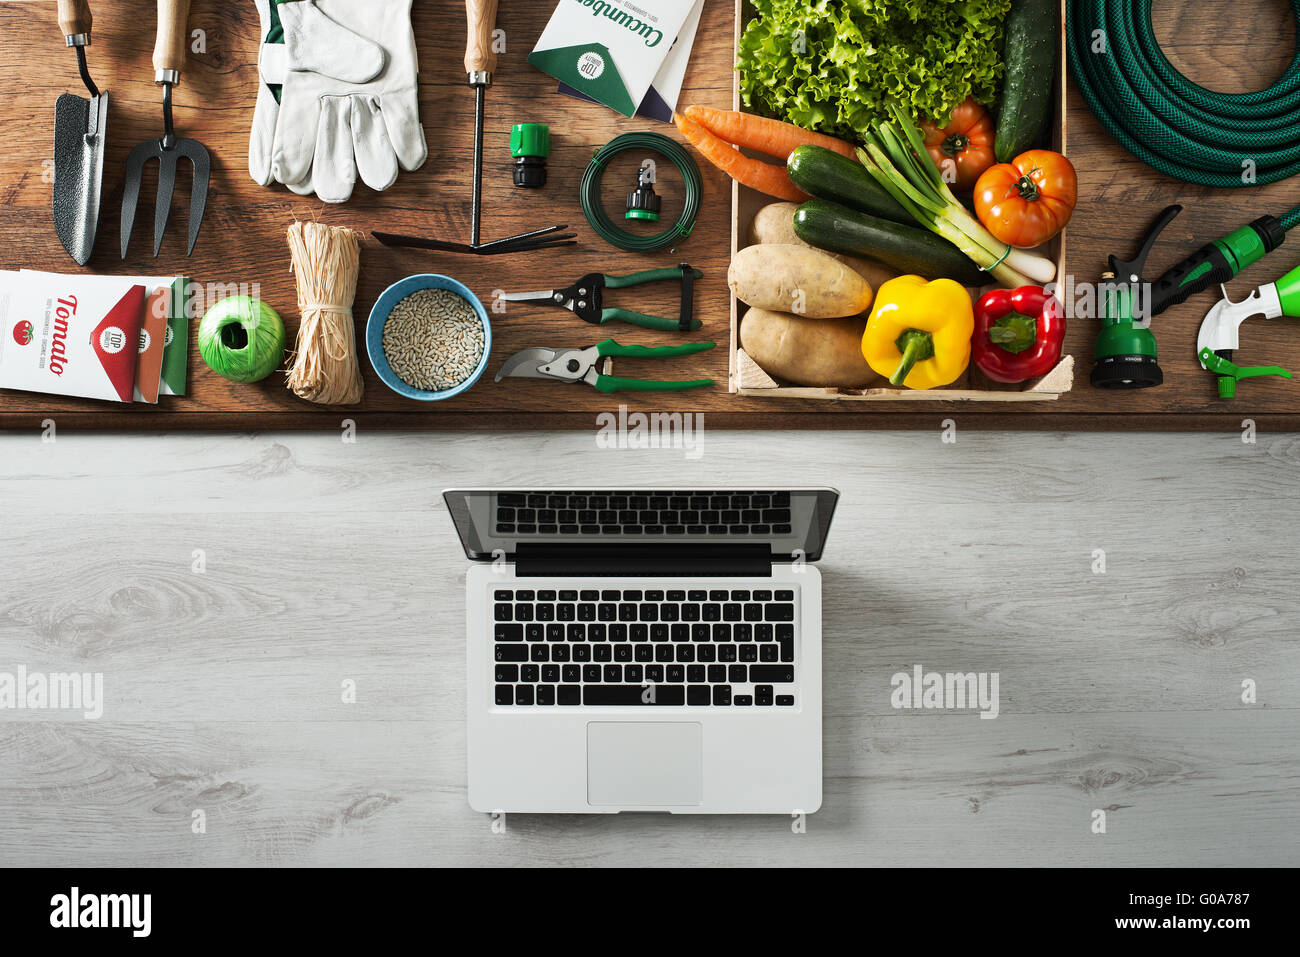 Farming tools stockfotos farming tools bilder alamy for Indischer holztisch